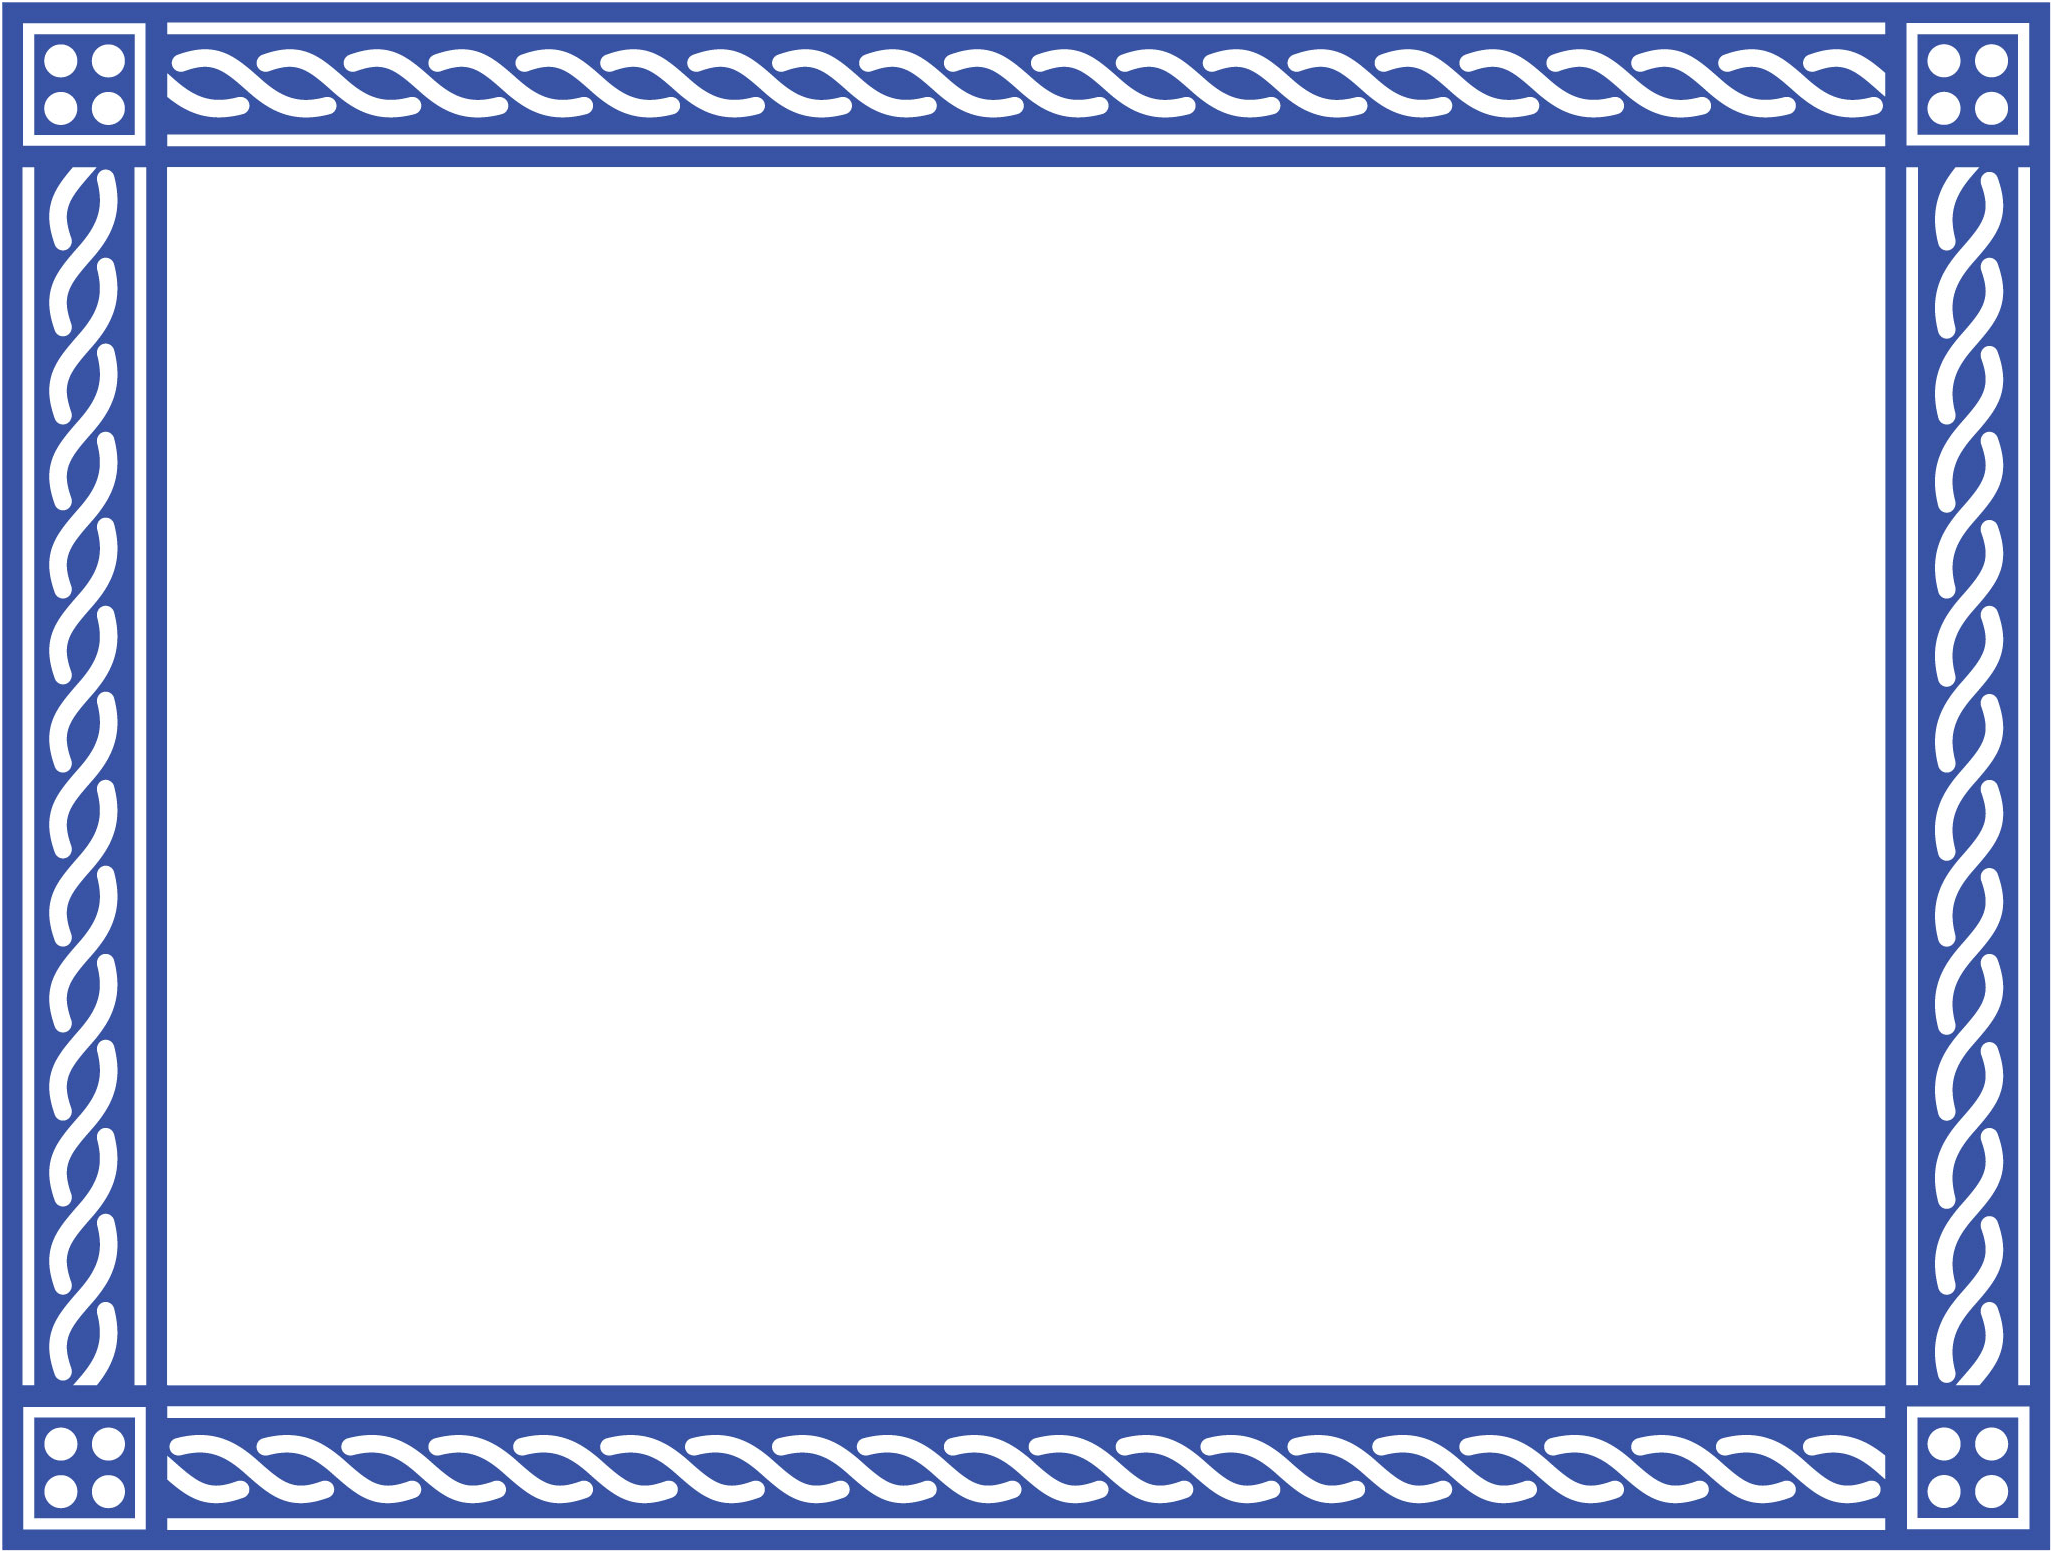 Border template png. Download certificate image blue